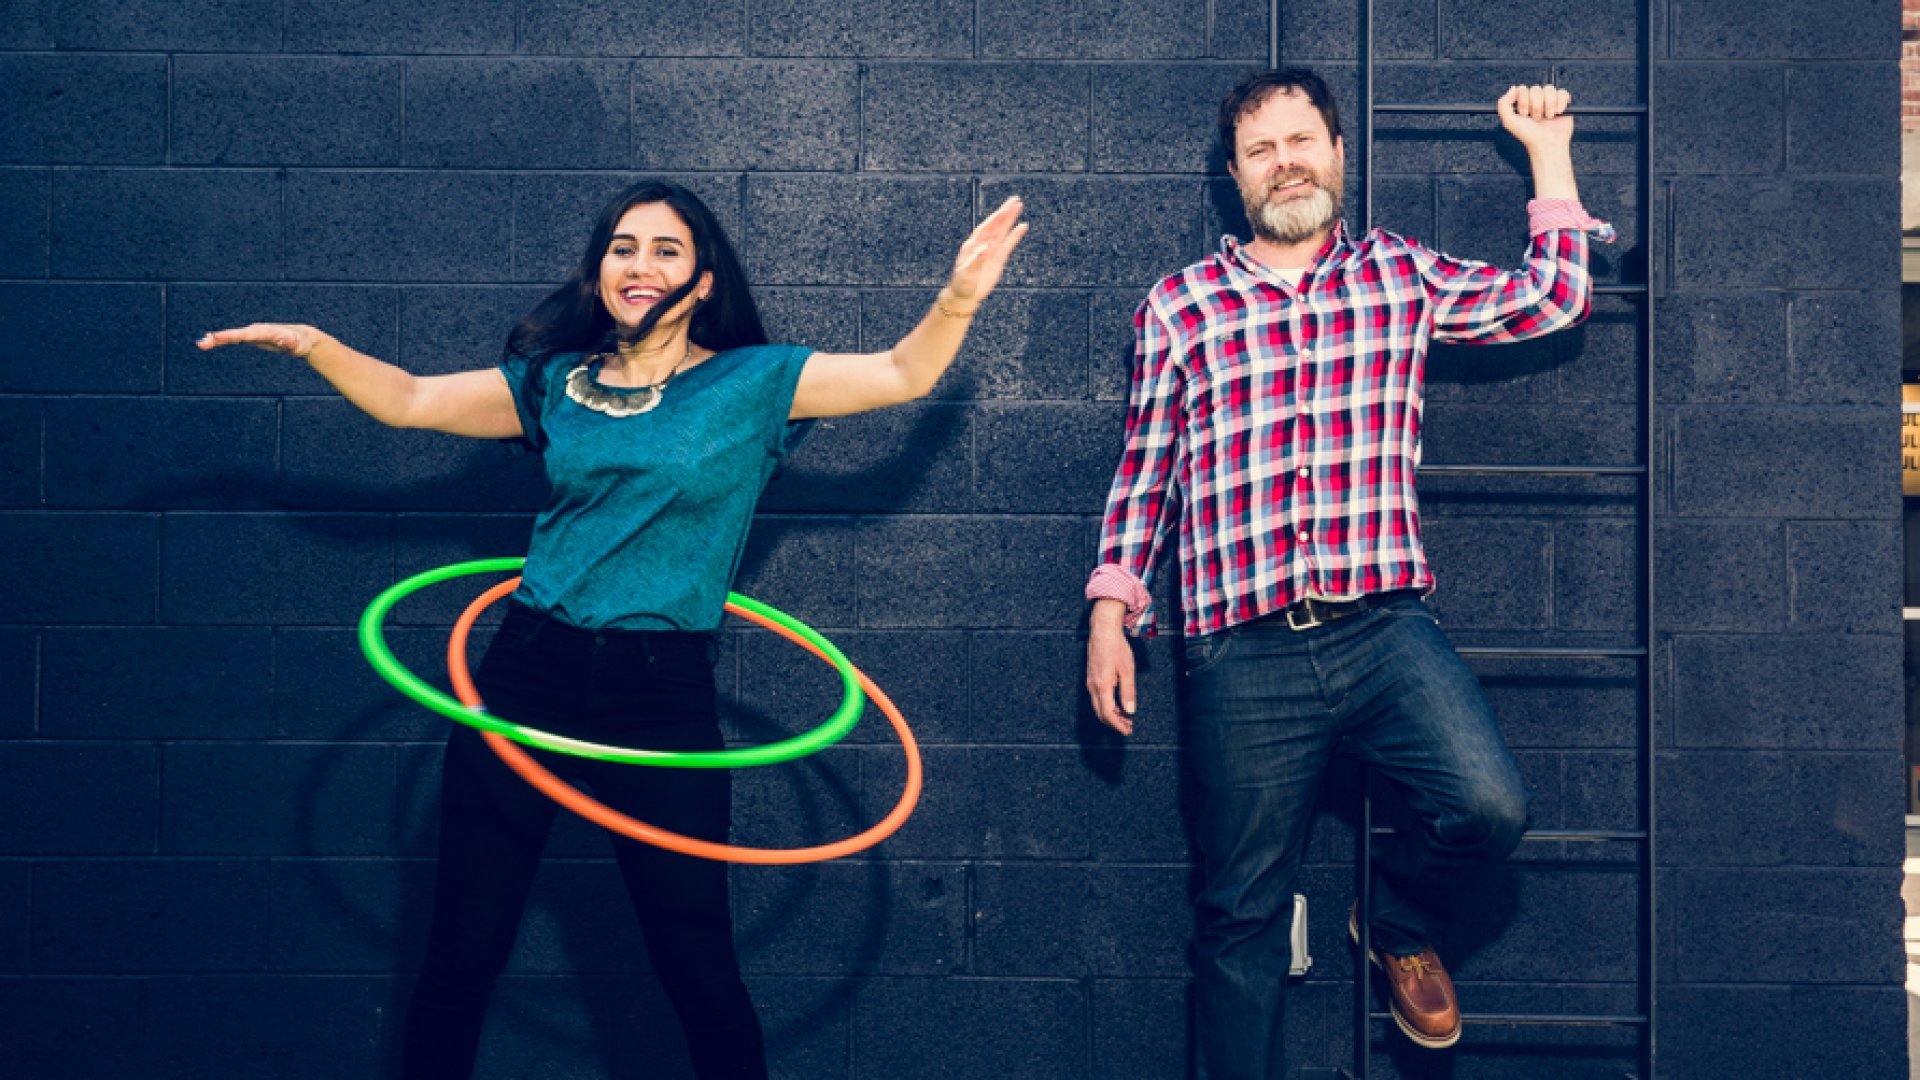 SoulPancake CEO Shabnam Mogharabi (left) and co-founder Rainn Wilson